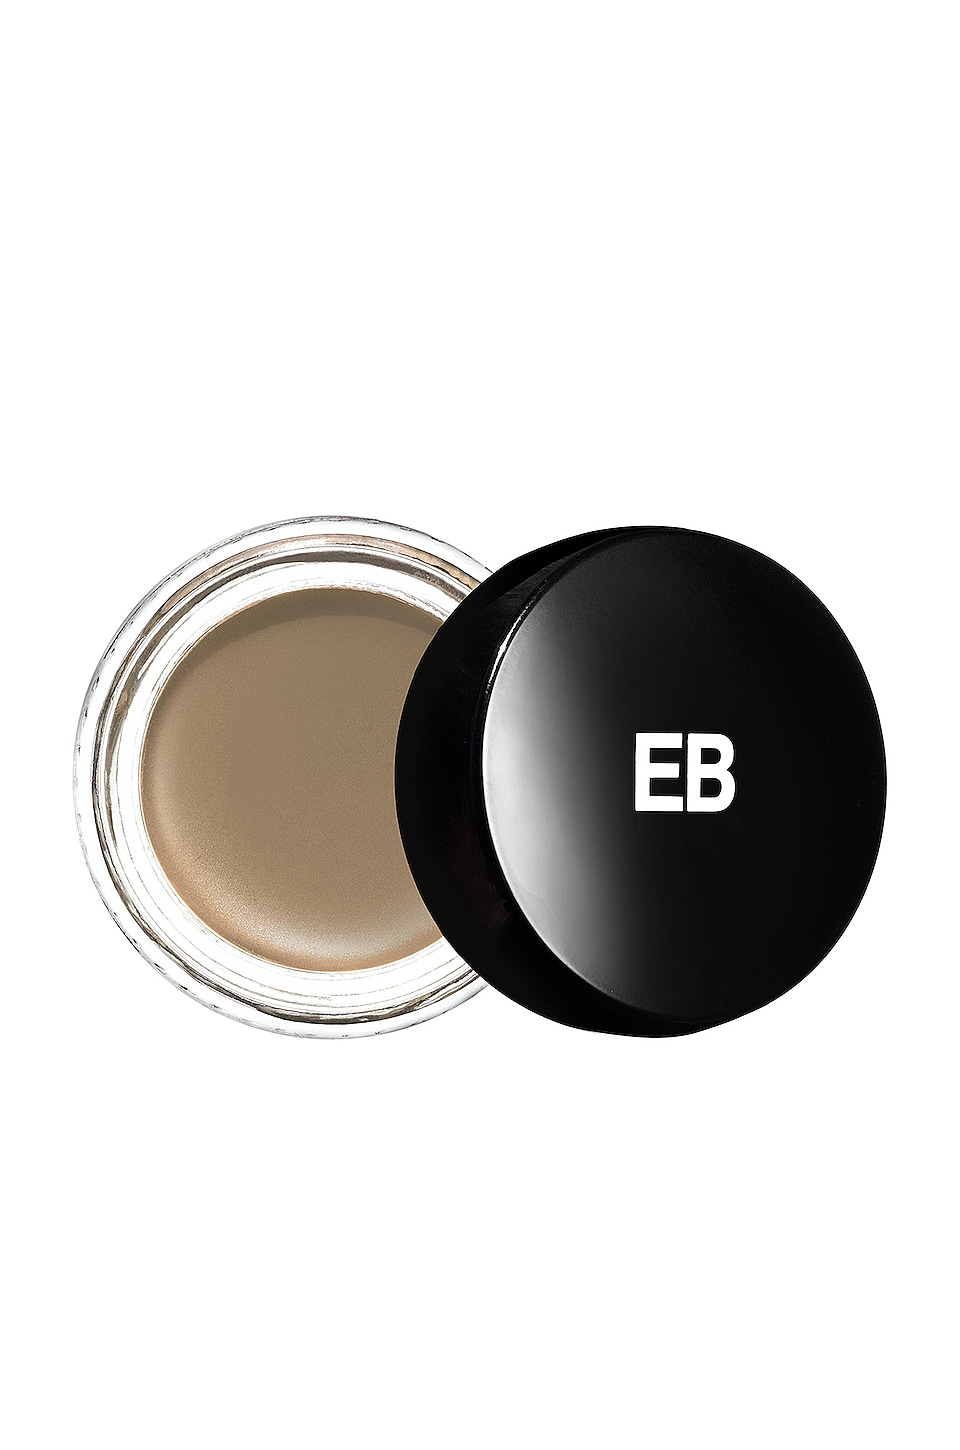 Edward Bess Big Wow Full Brow Pomade in Light Taupe